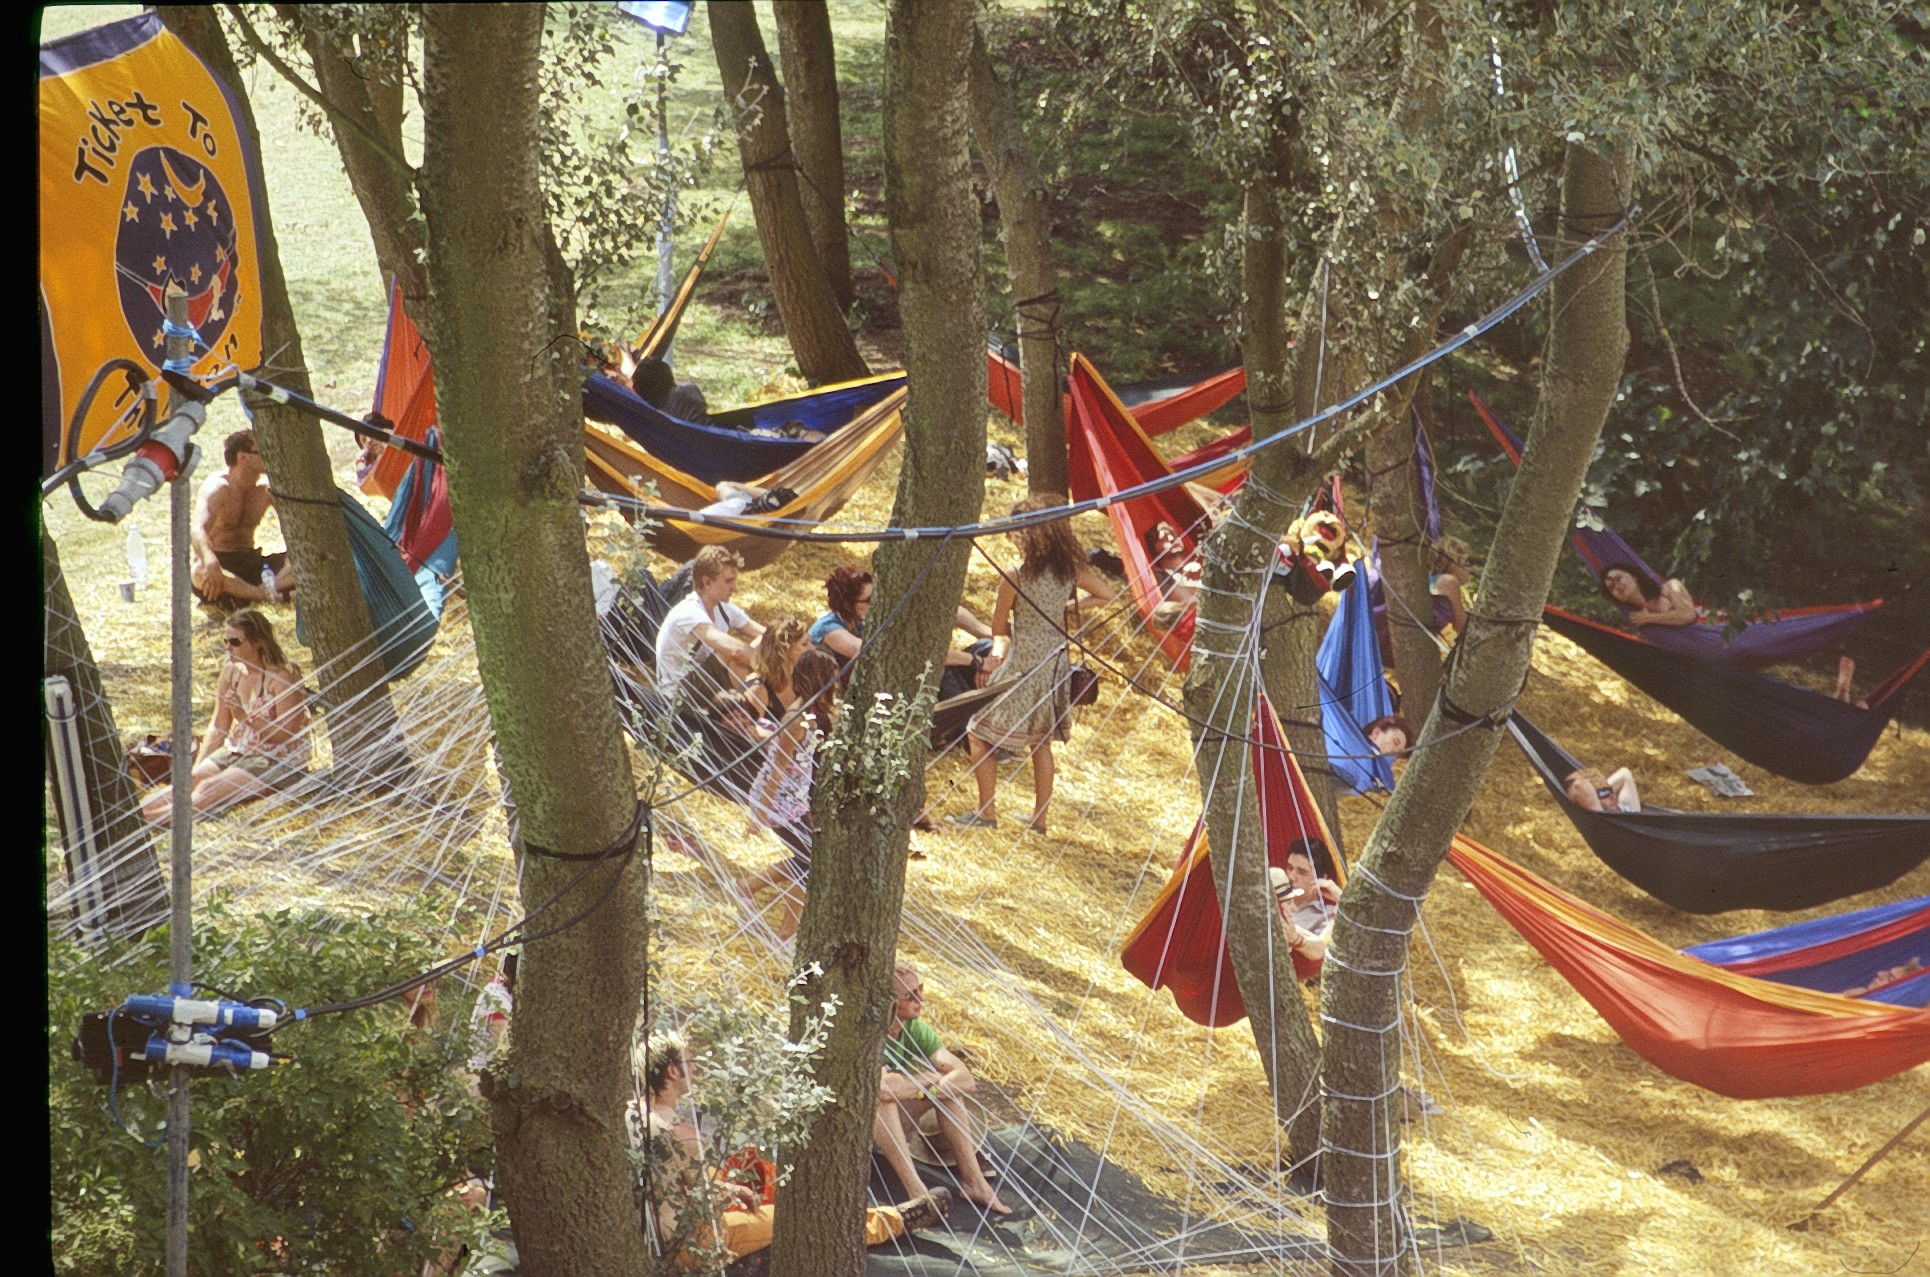 TTTM3872_hammock_parachute_TM_festival_fun_smile_forest_relax_happiness_ticket_to_the_moon.jpg